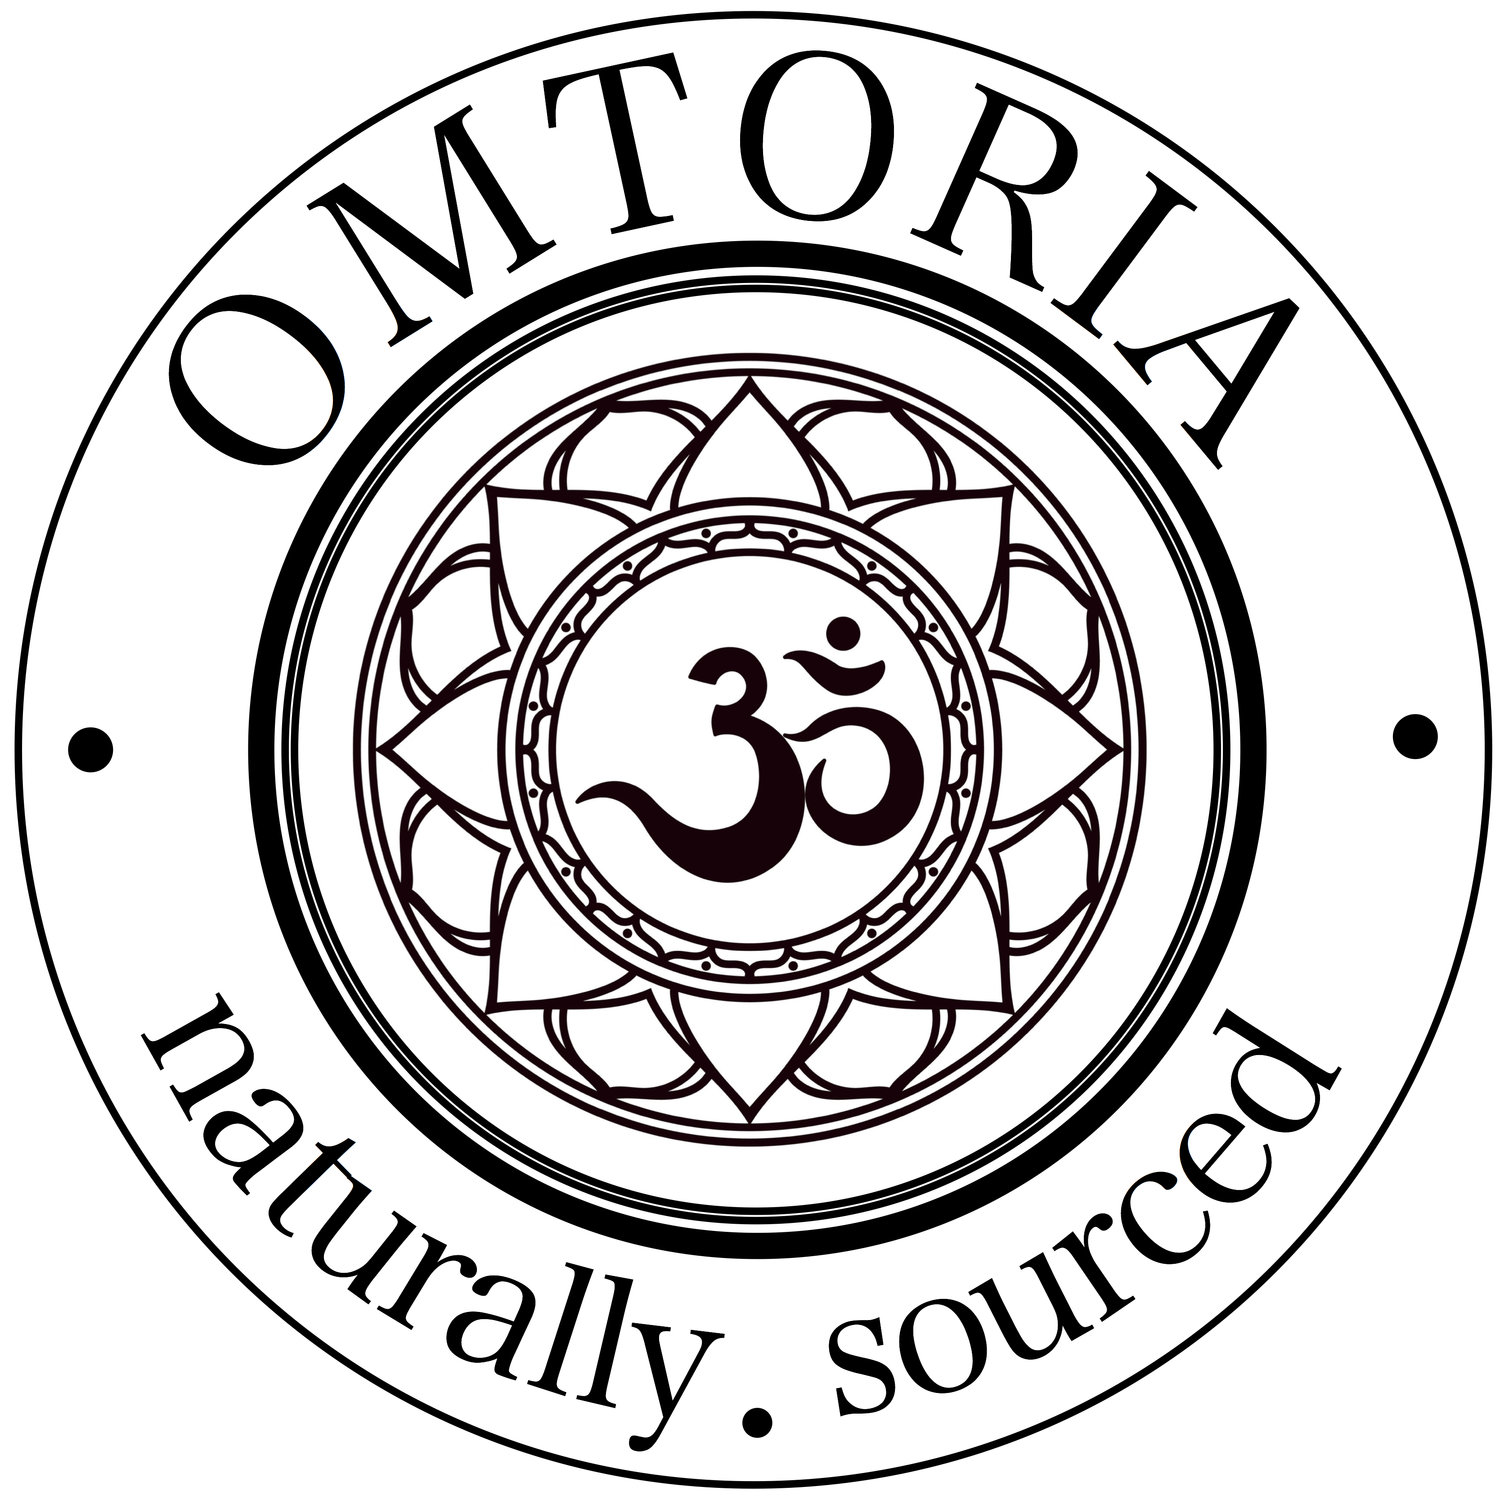 Omtoria - All Natural Skin Care